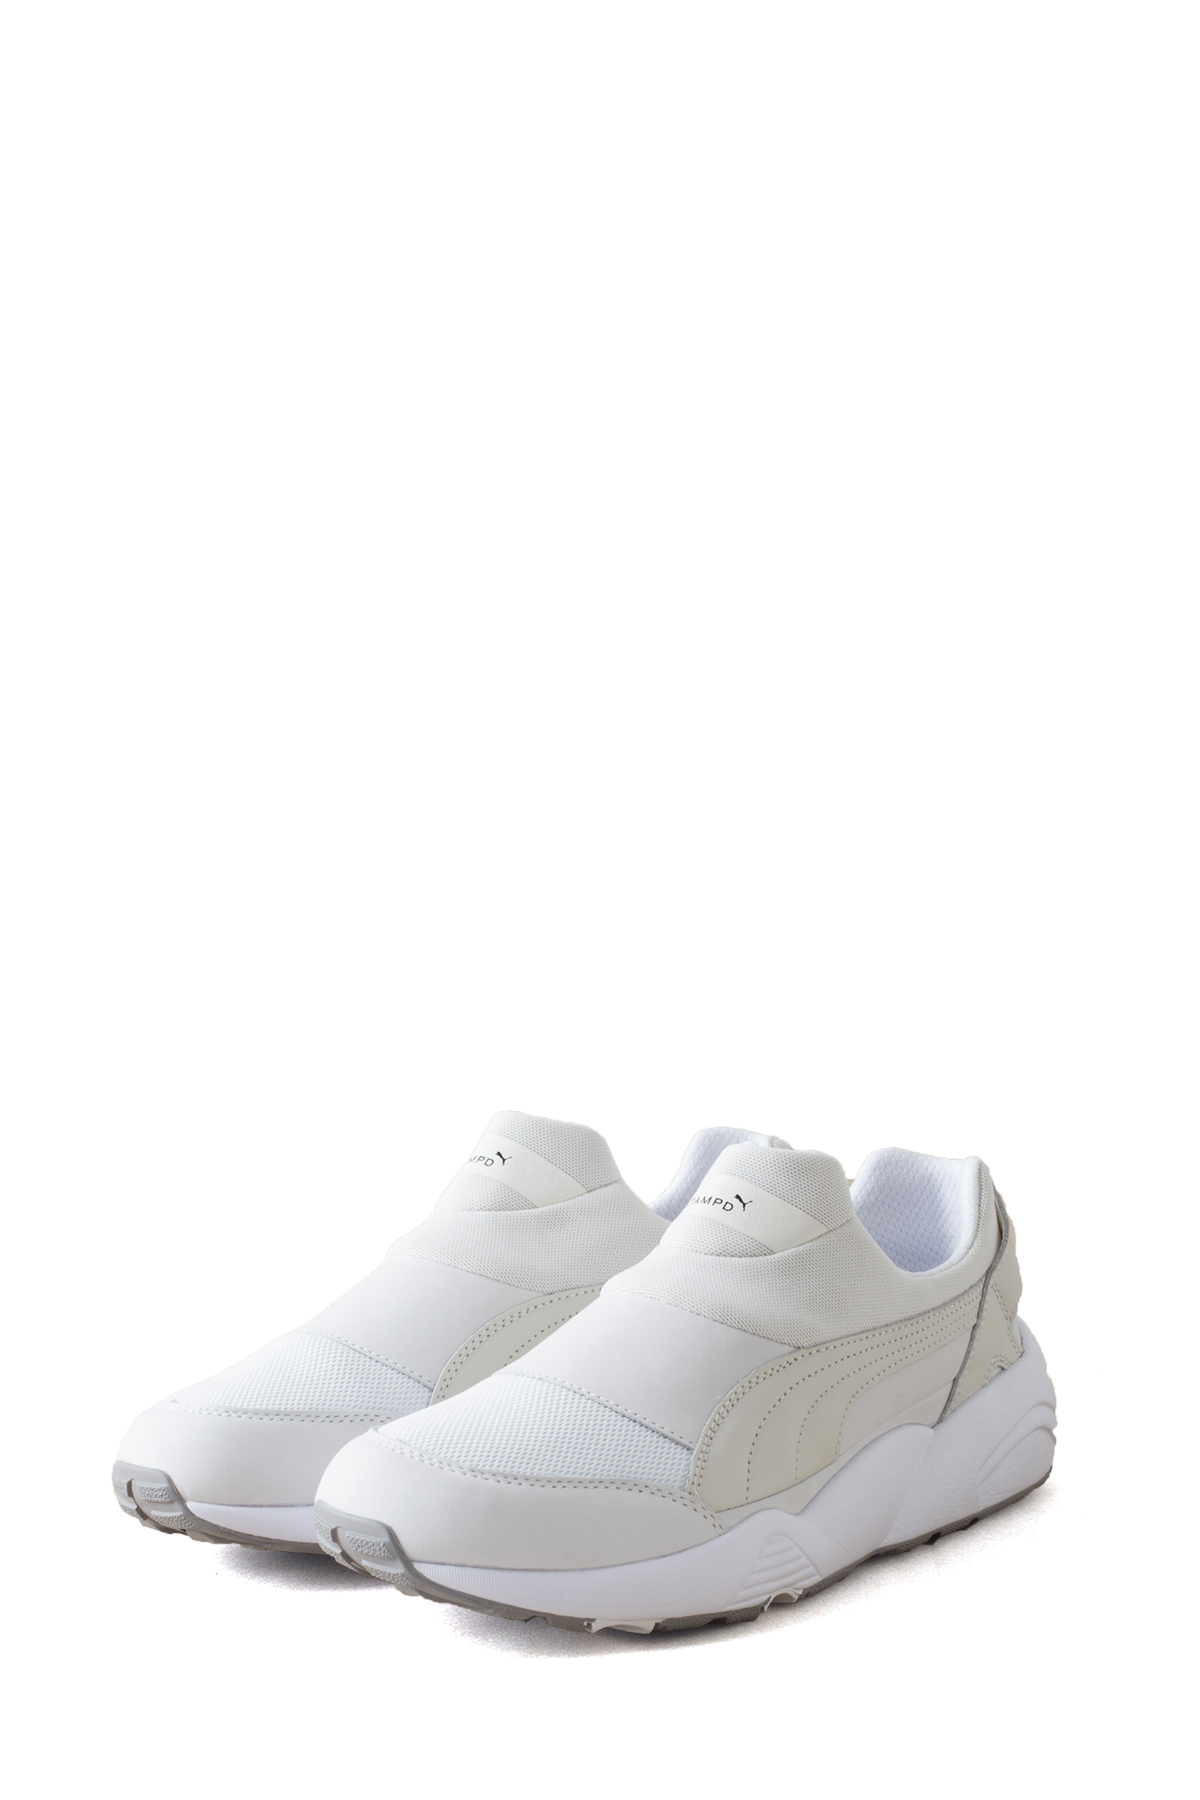 Puma x STAMPD : Trinomic Sock NM x STAMPD (White)